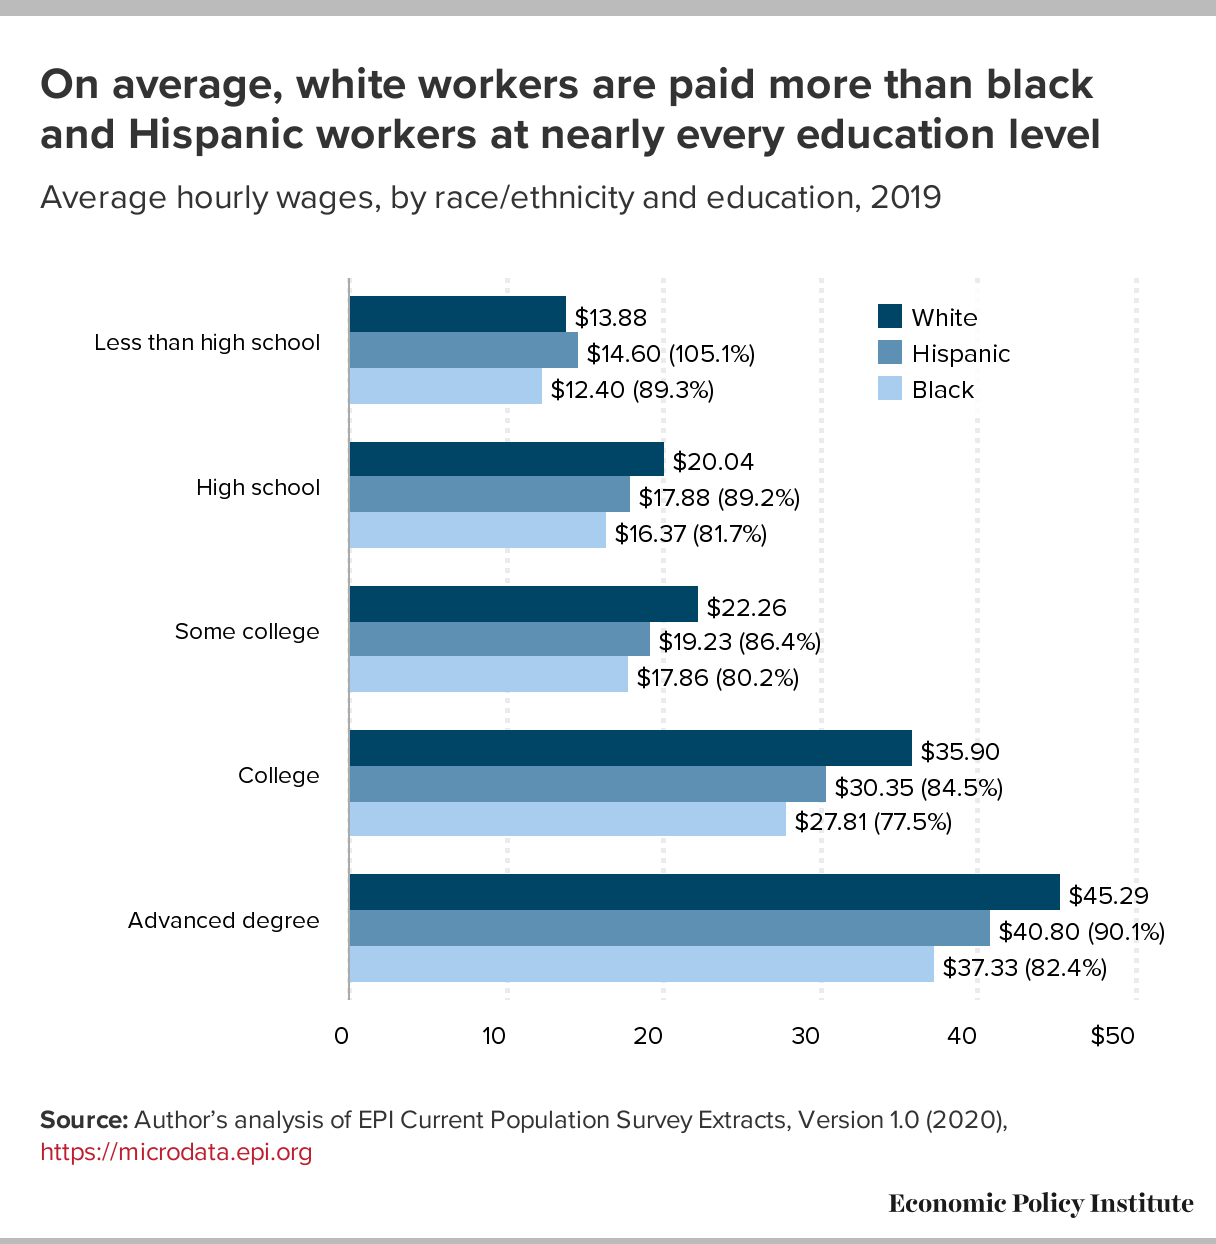 Graph: Average hourly wages, by race/ethnicity and education, 2019